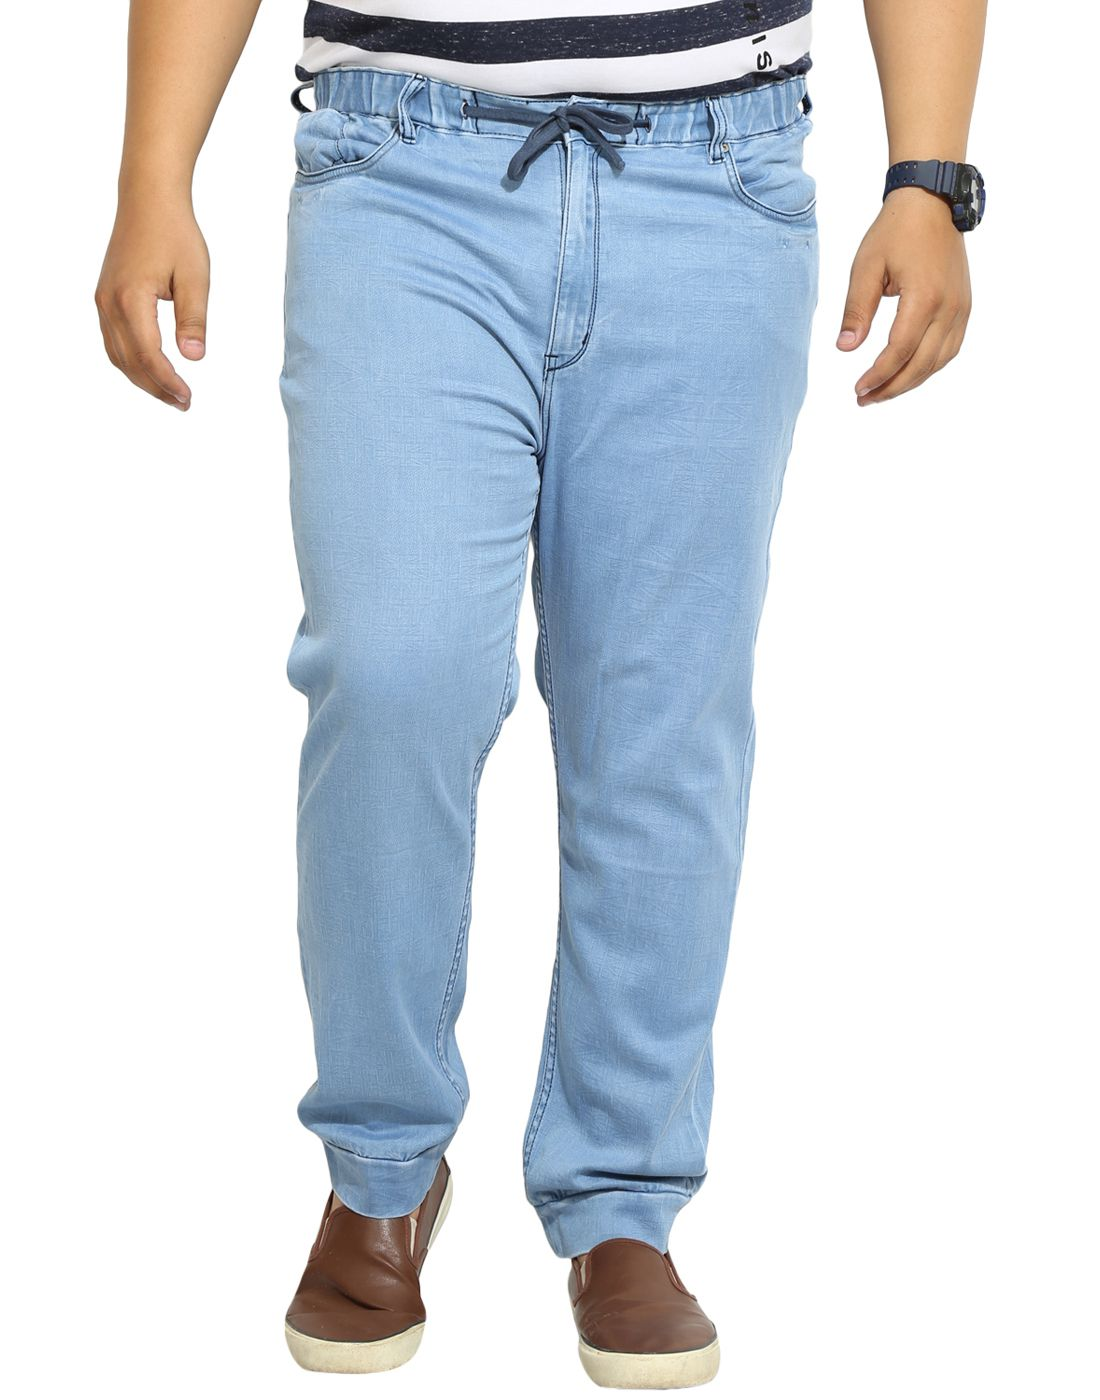 John Pride Light Blue Slim Jeans